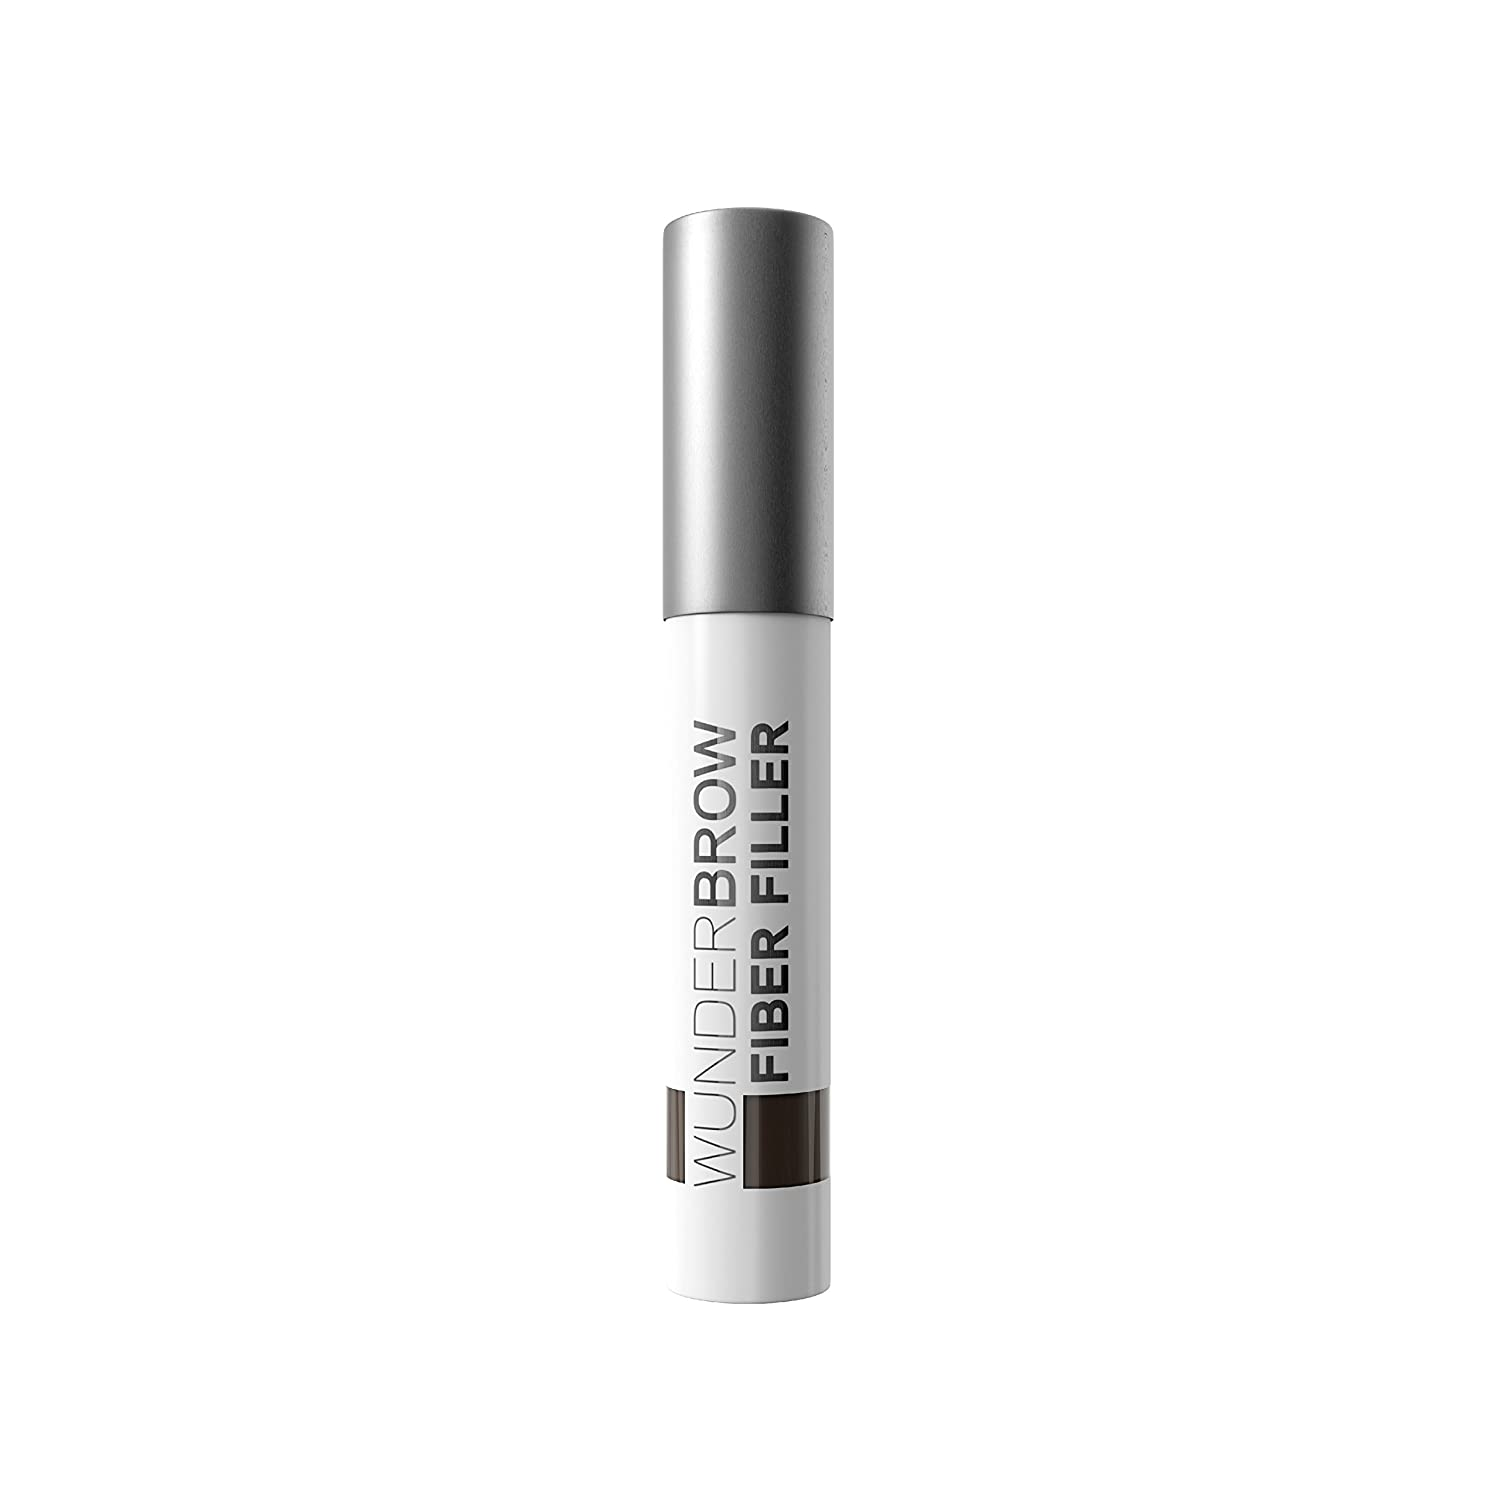 WUNDERBROW FIBER FILLER Long Lasting Eyebrow Powder Makeup for Fuller Healthier Brows, Brunette